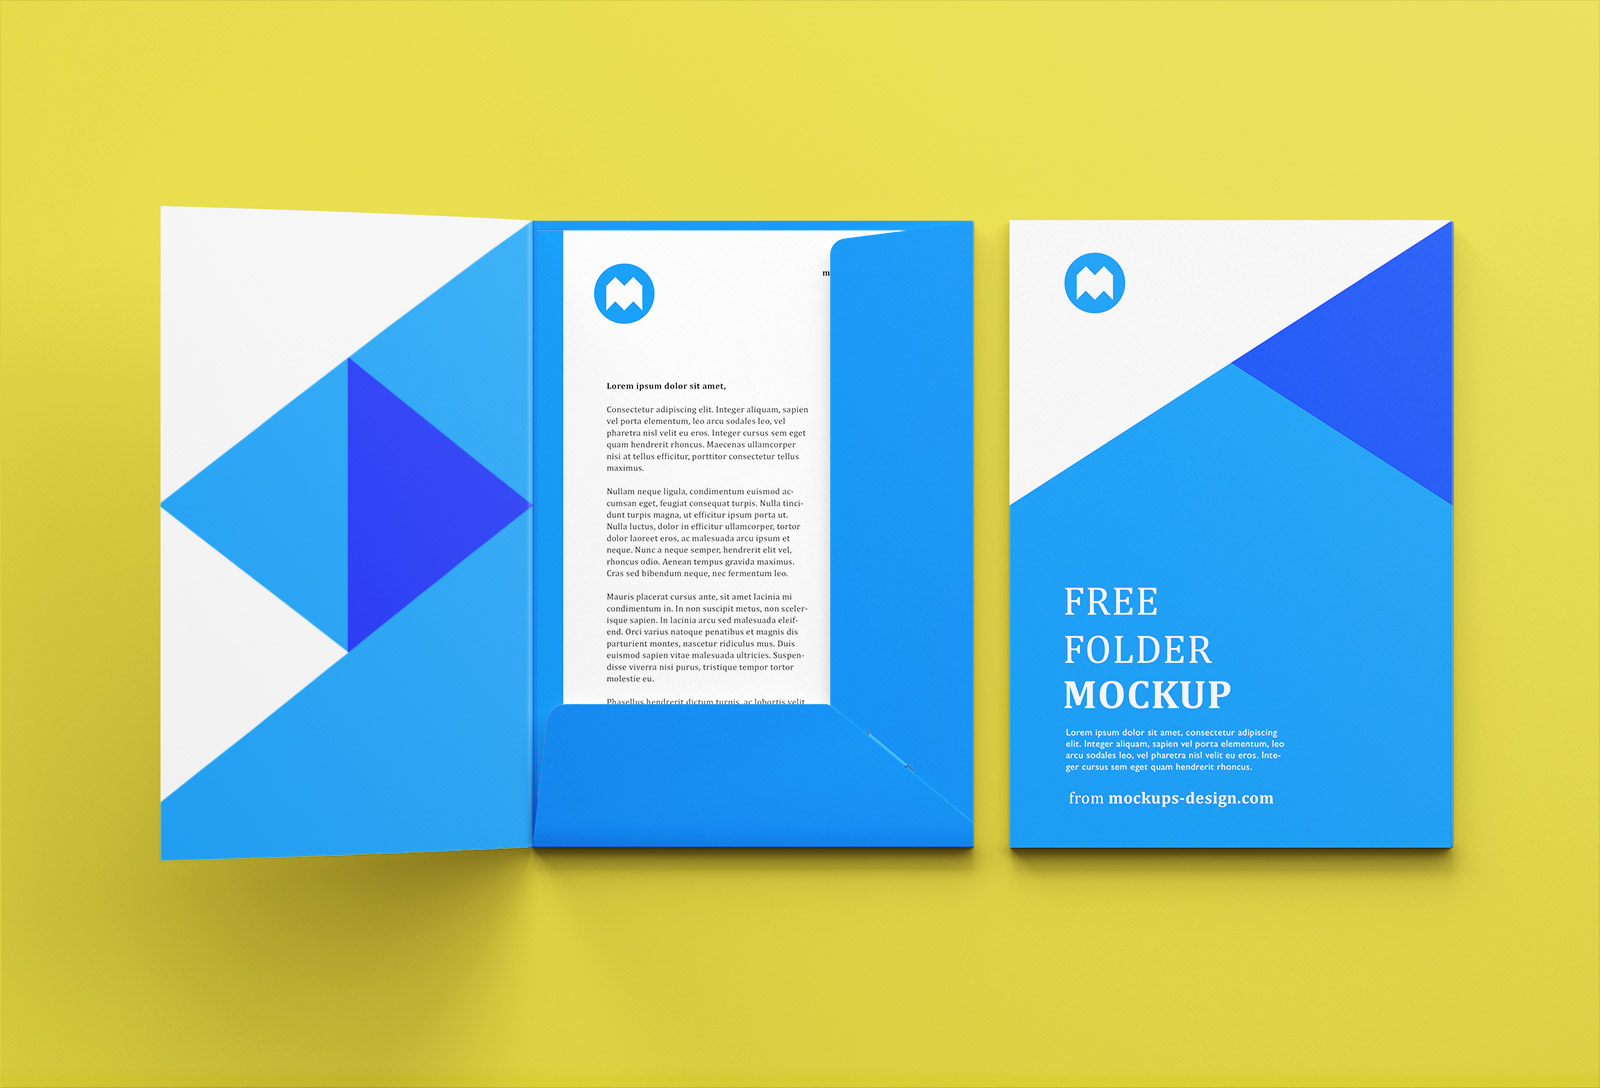 Free-A4-Size-Folder-Mockup-PSD-Set-2